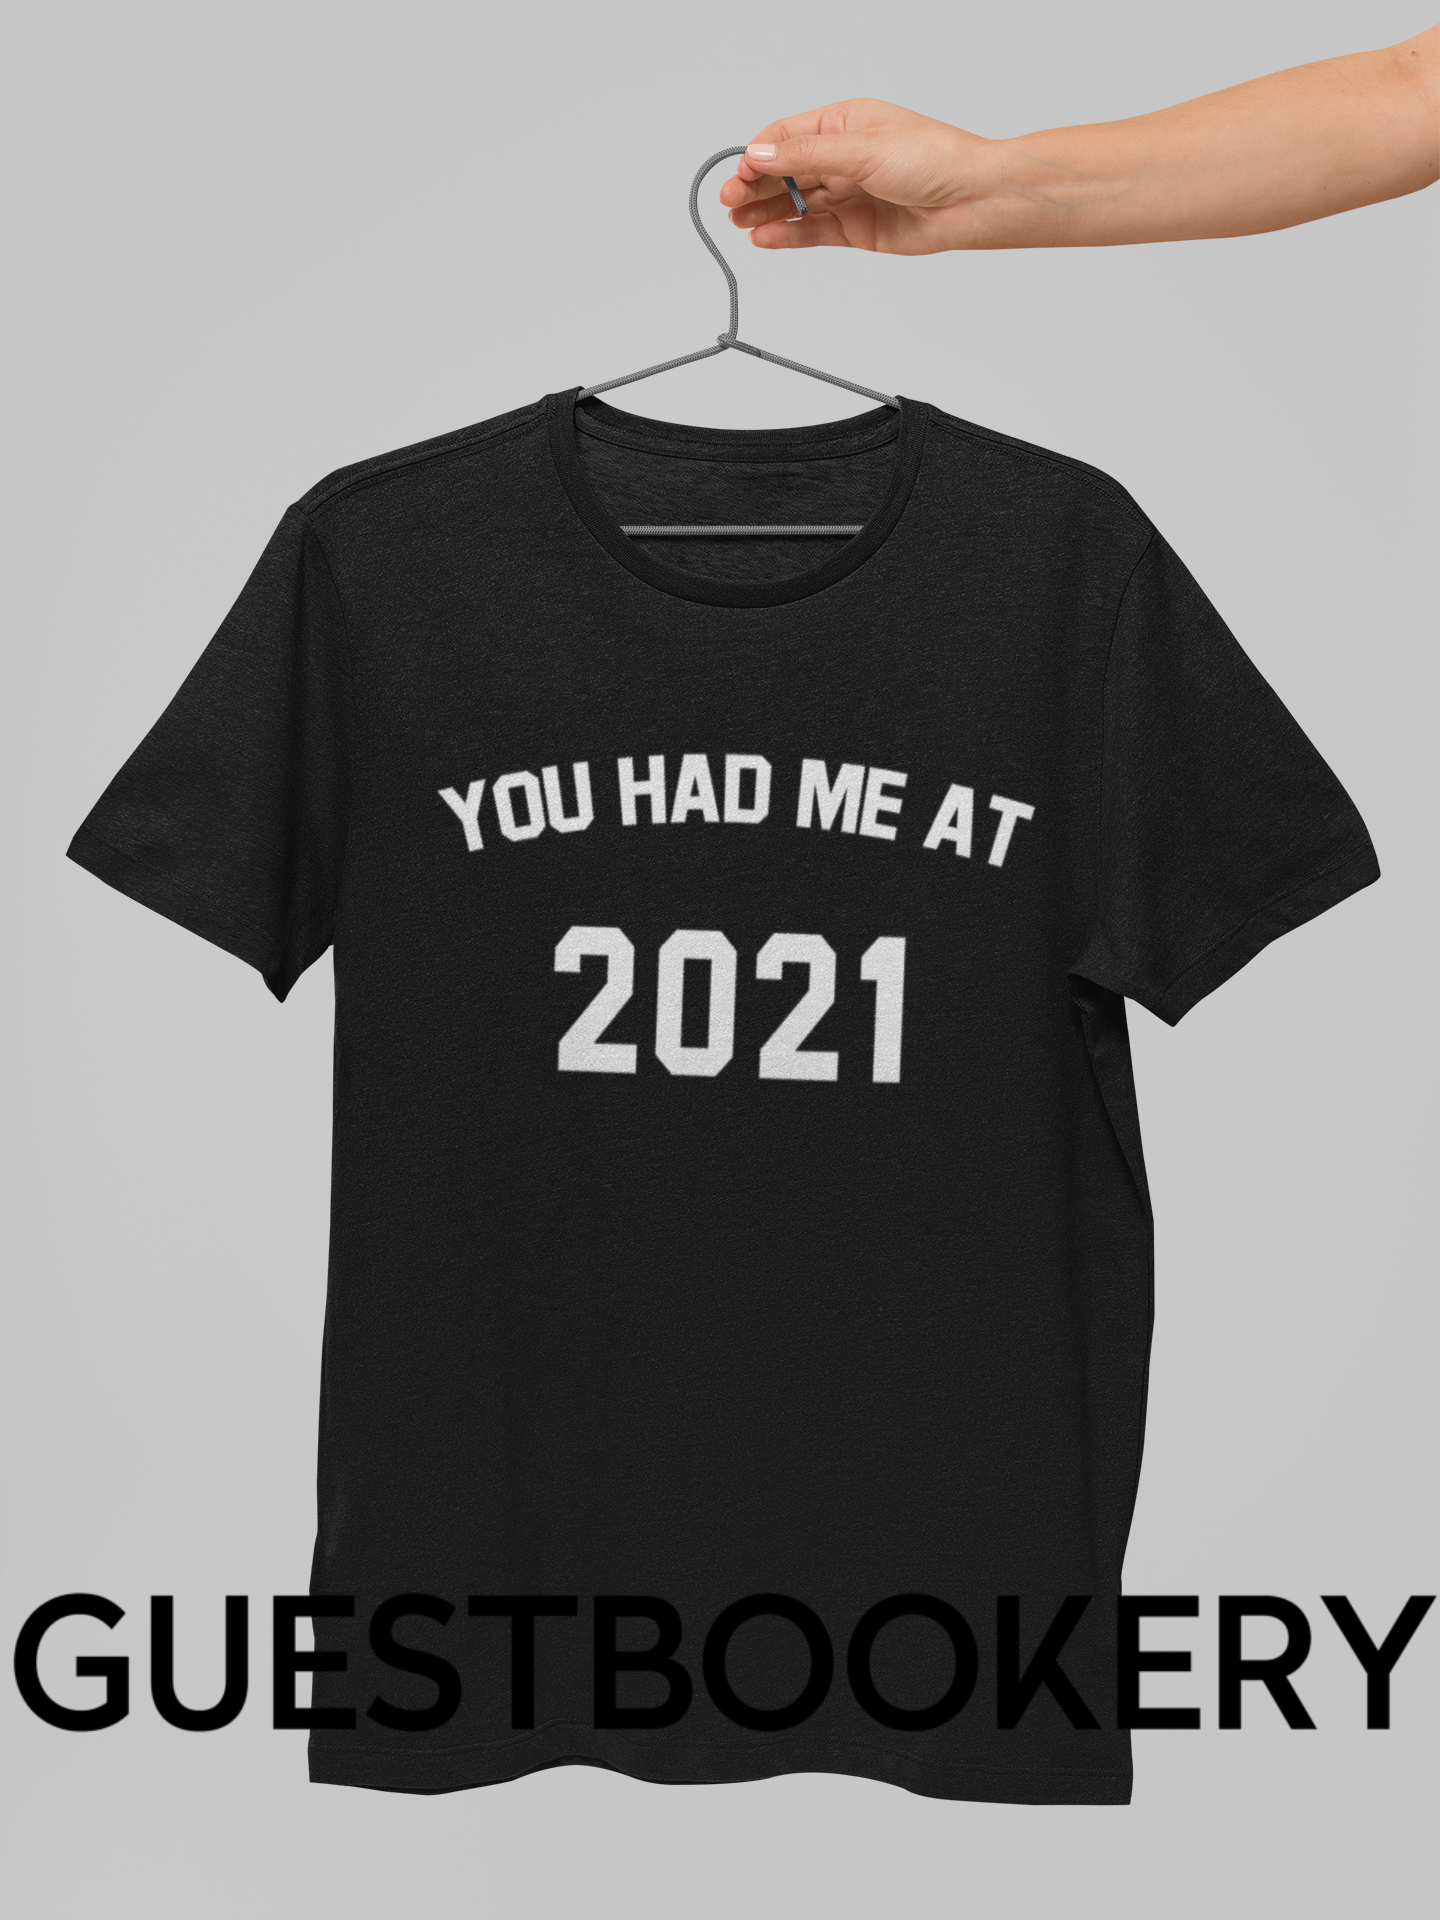 You Had Me At 2021 T-Shirt - Guestbookery